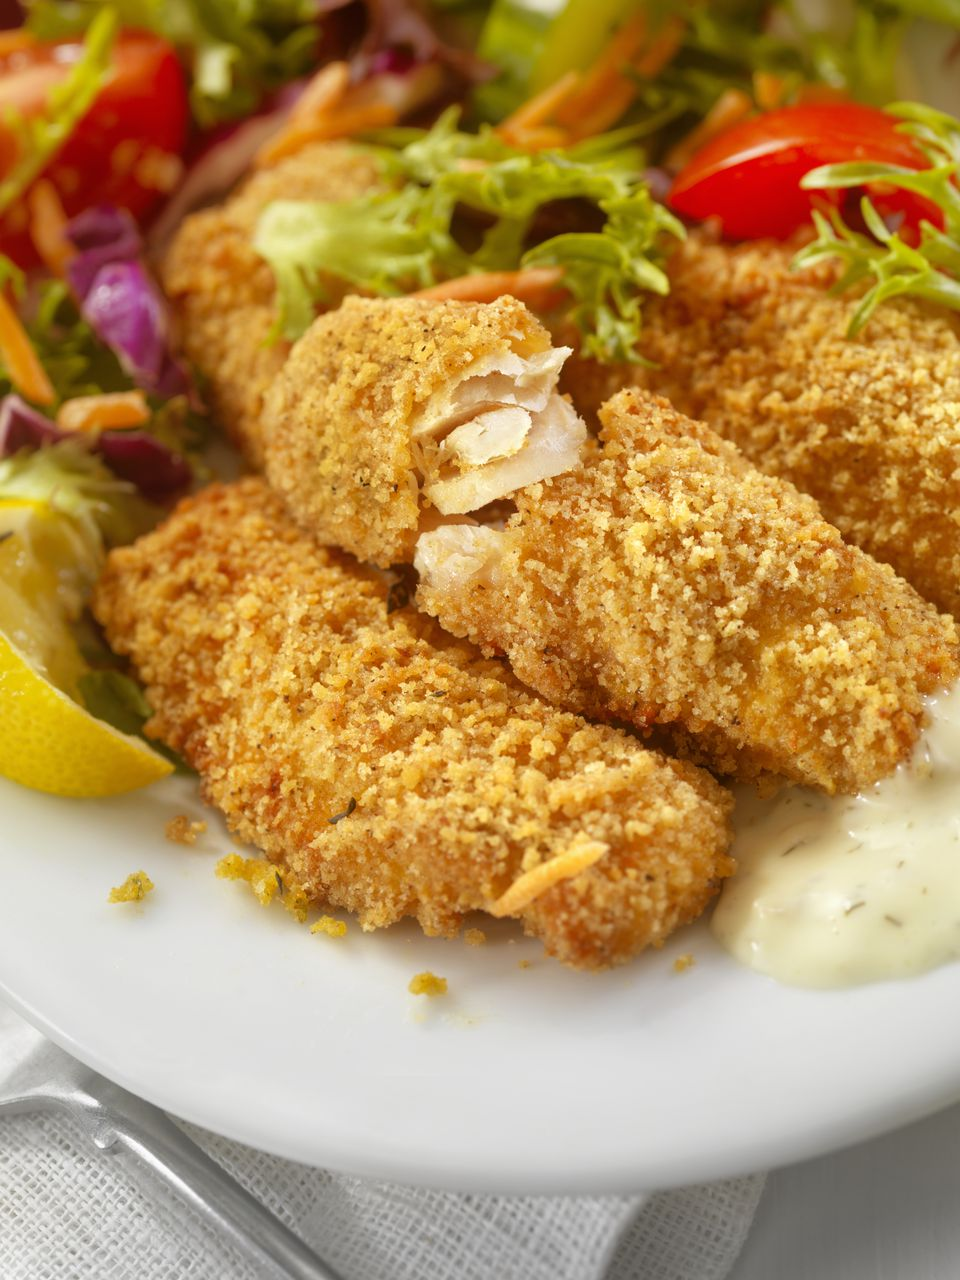 Parmesan baked fish fillet recipe for How to make breaded fish